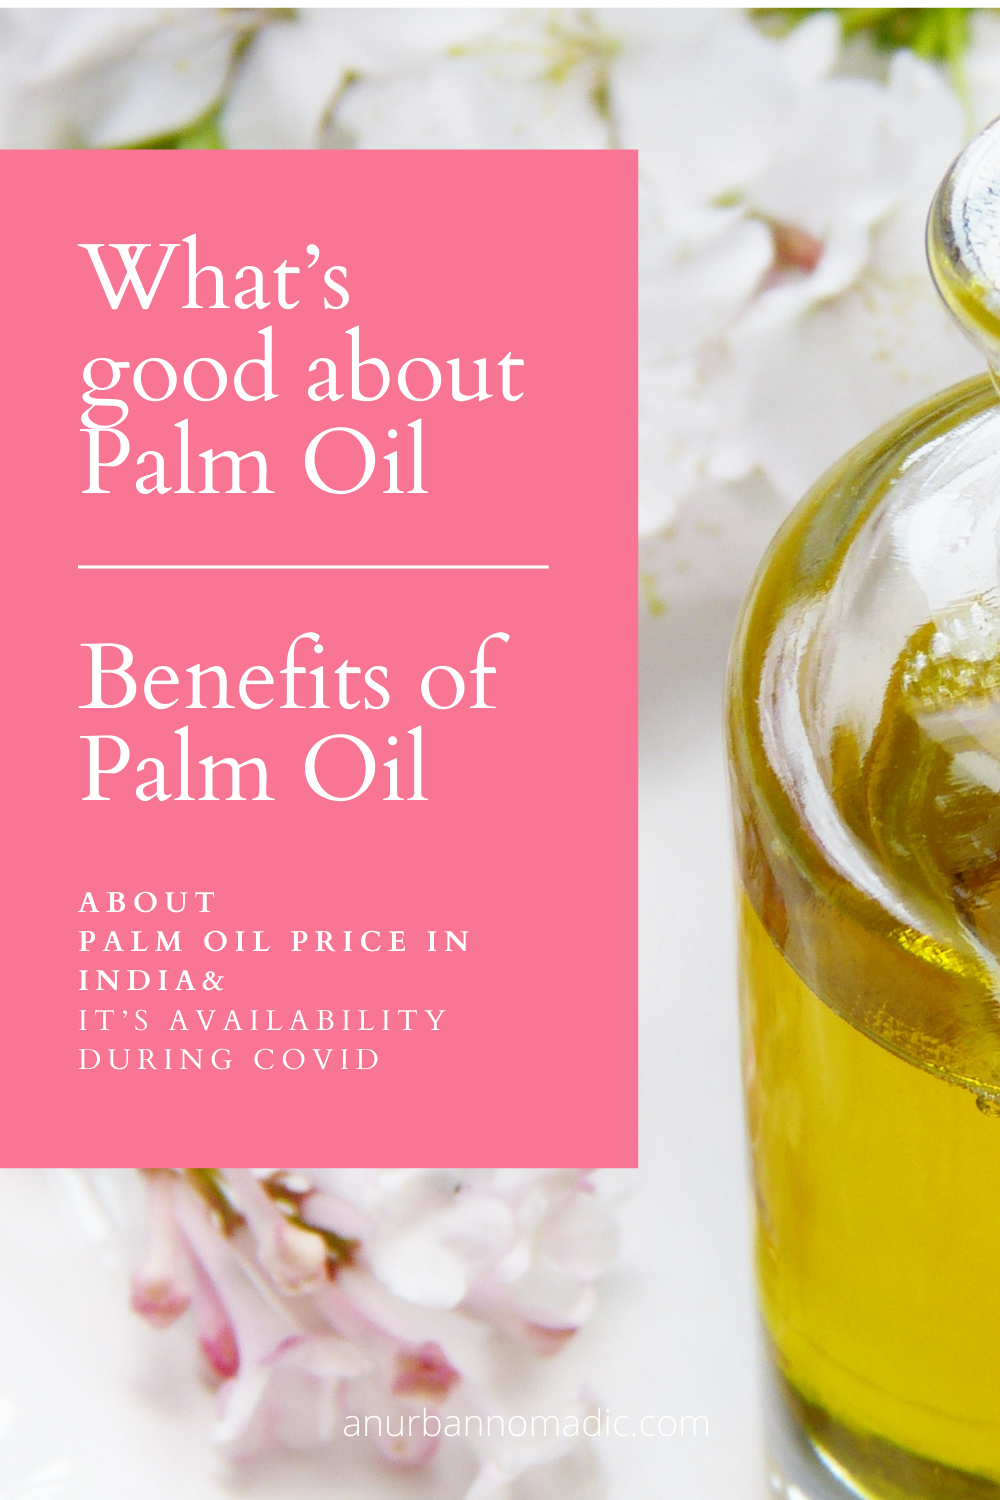 What are the benefits of Palm oil